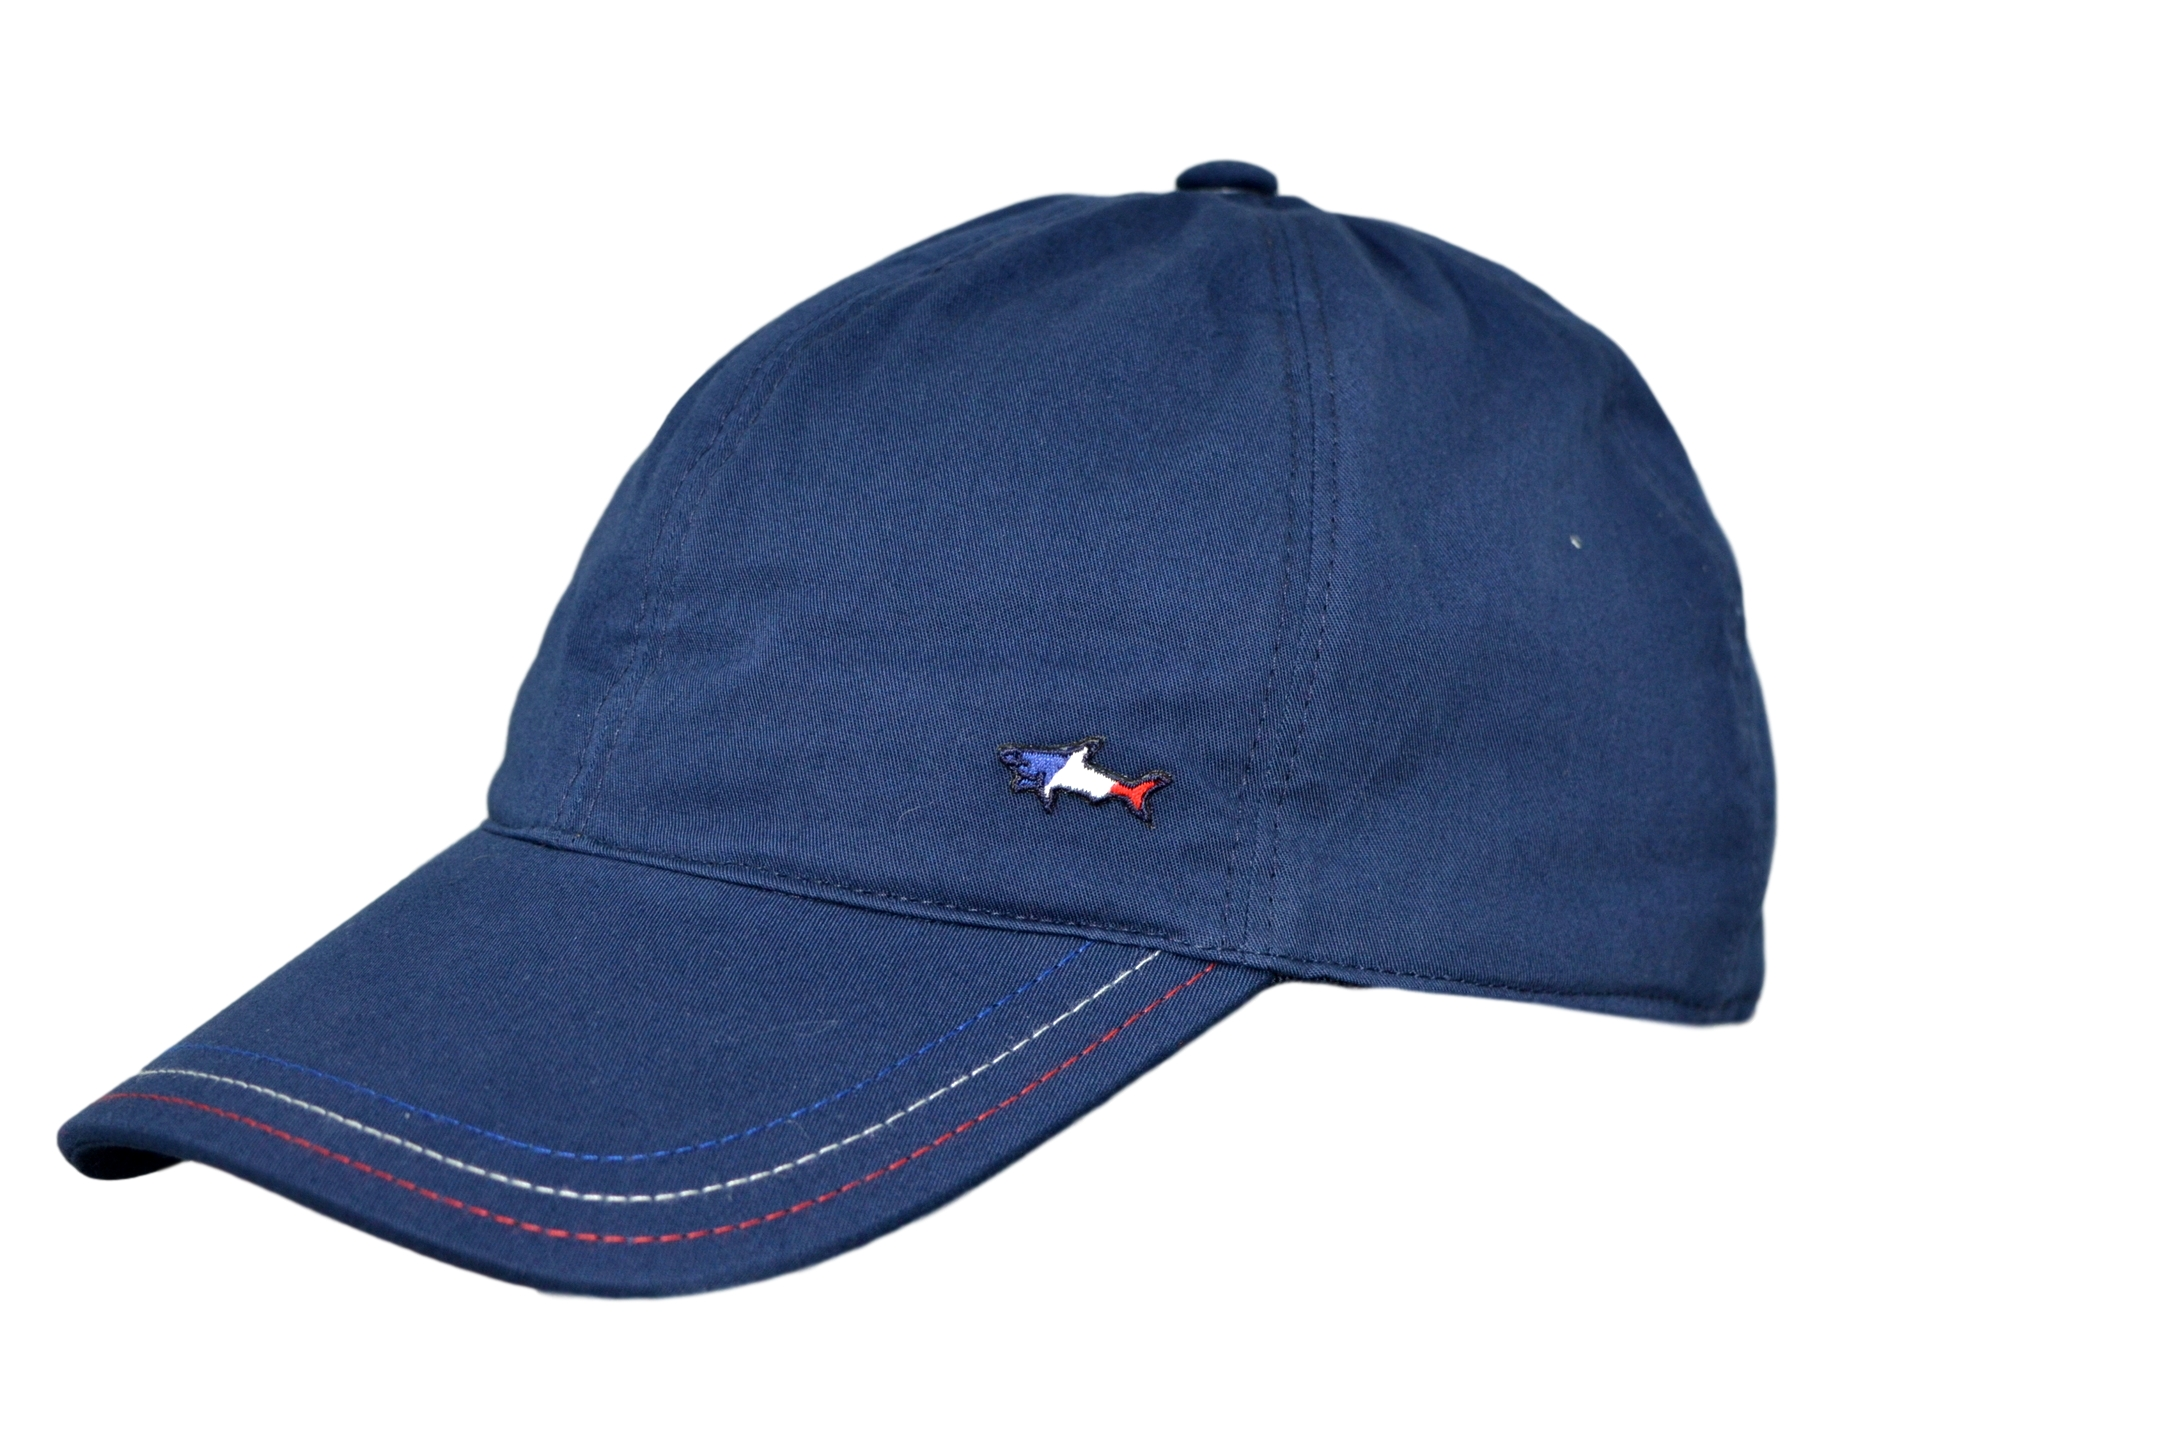 PAUL SHARK cappello da baseball in cotone COLORE FRANCIA E20P7118 MADE IN ITALY